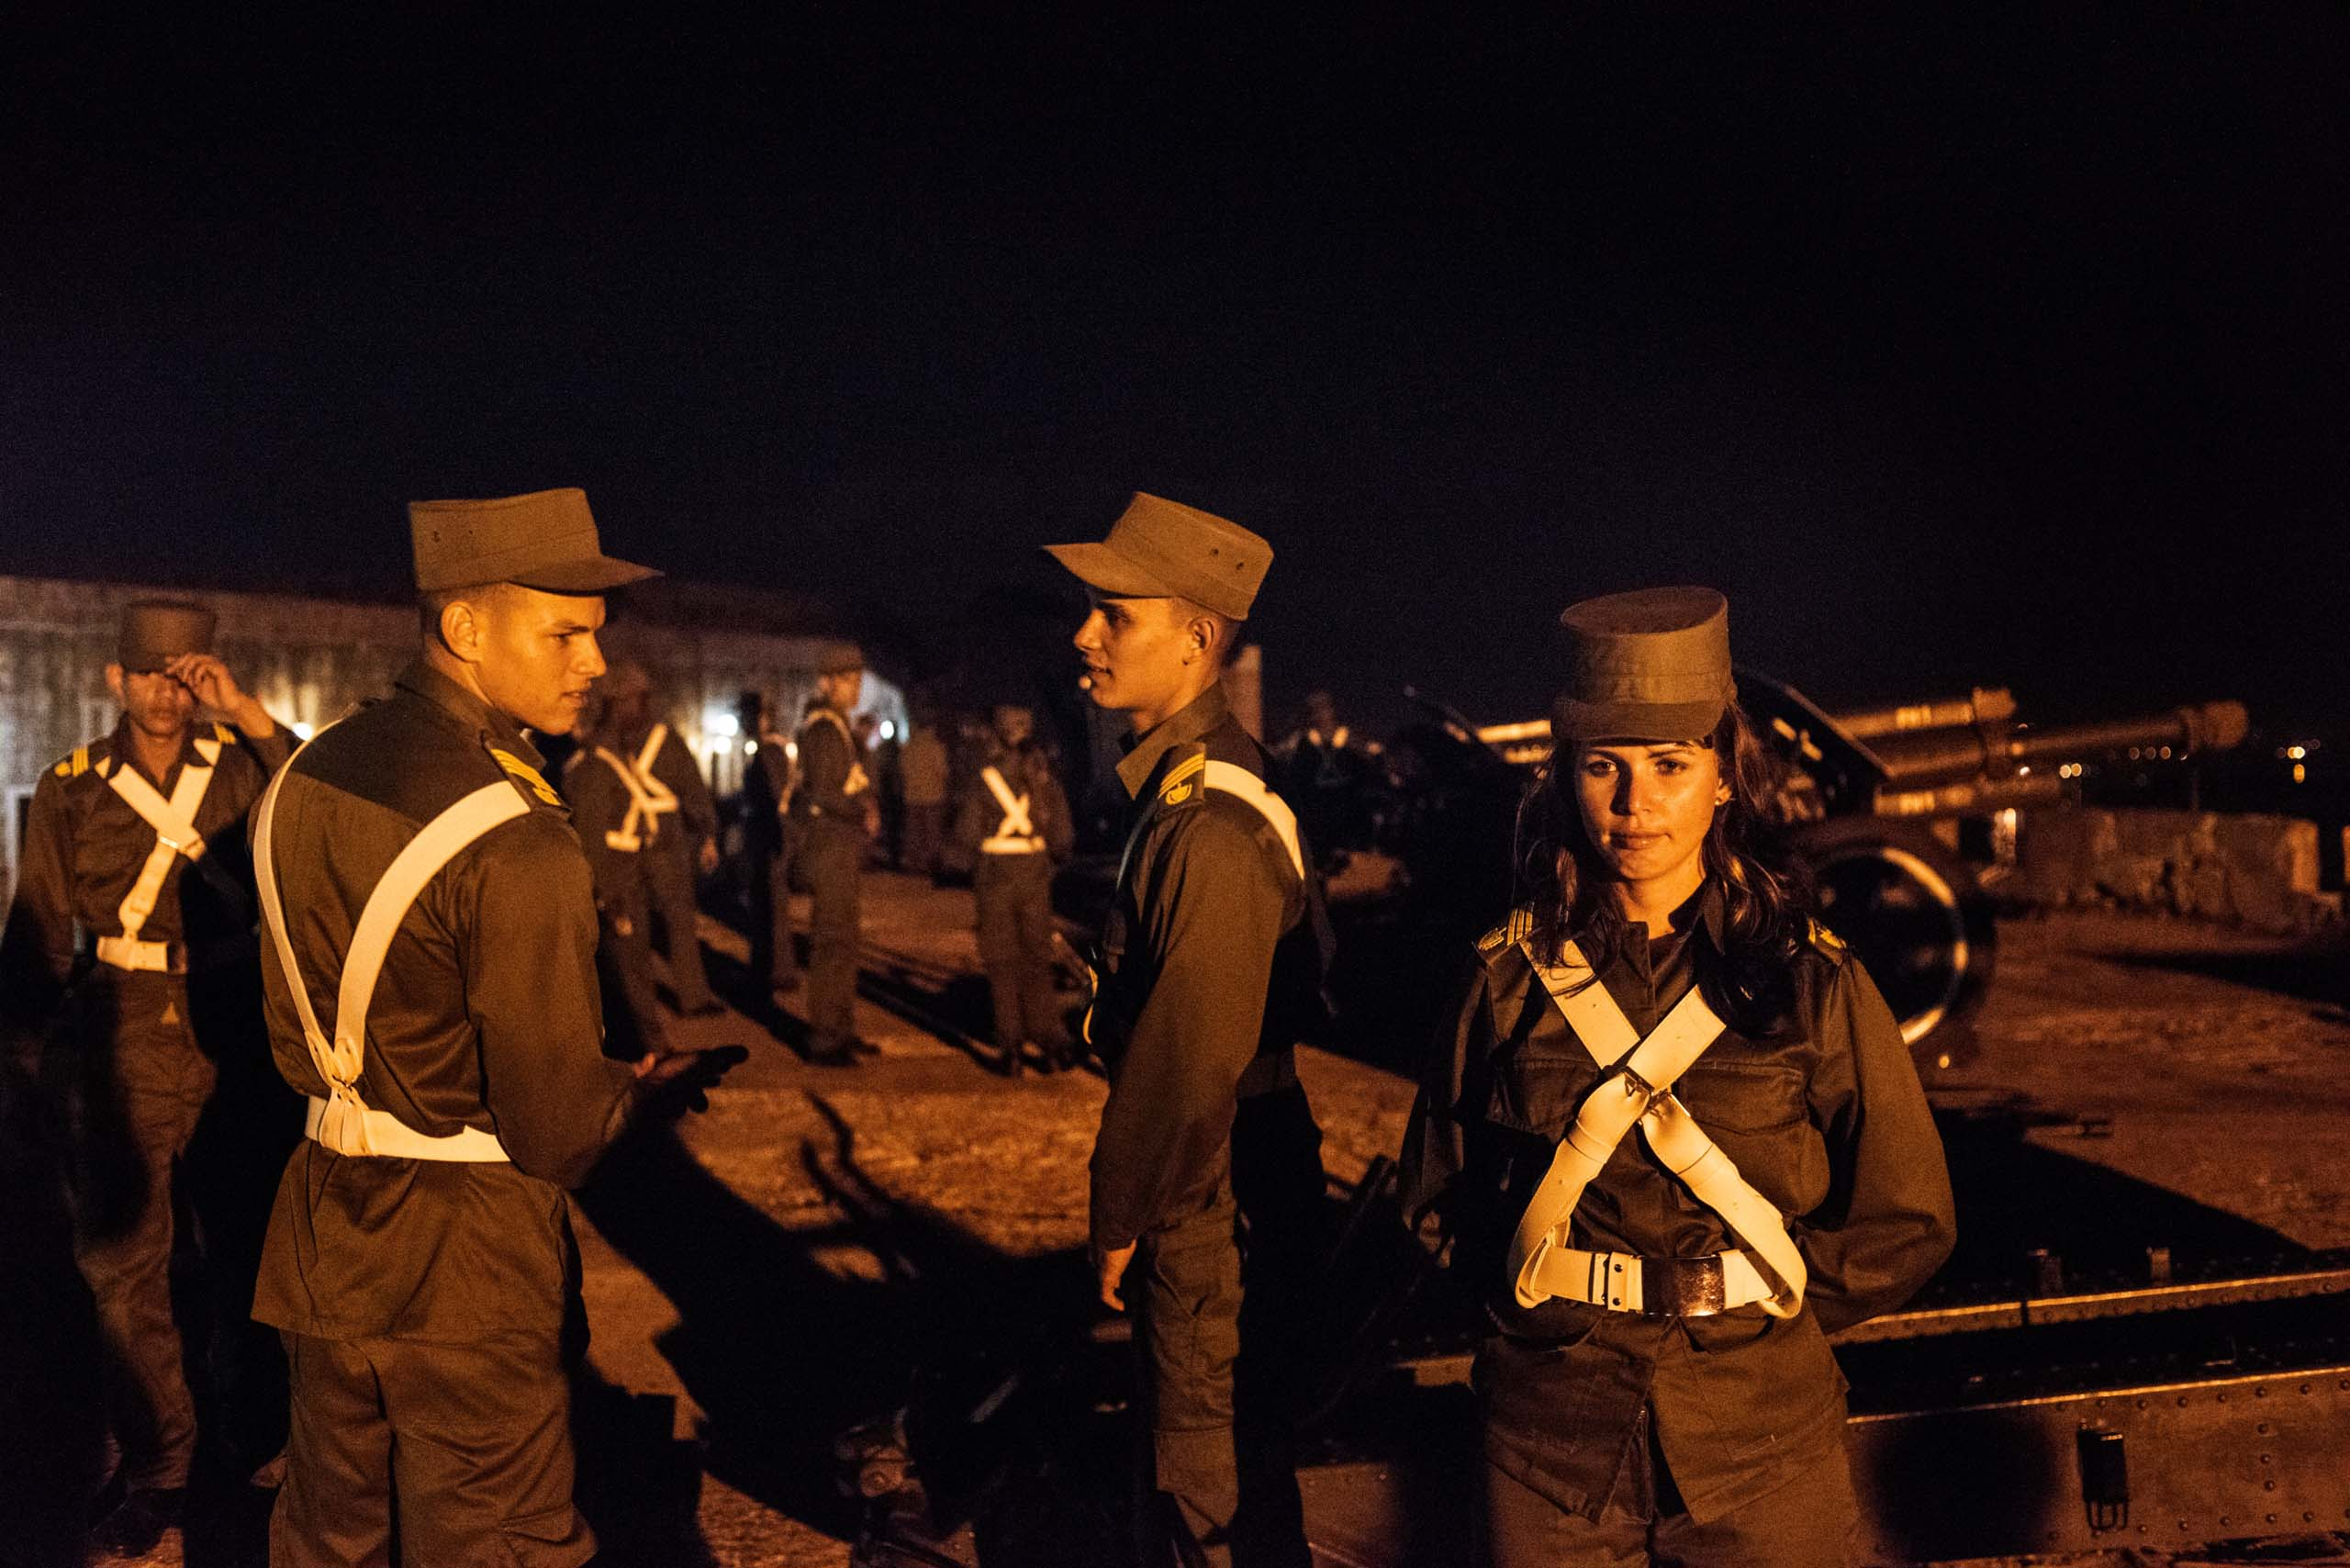 Jan. 1, 2015. Members of the military celebrate the New Year at the San Carlos de la Cabana Fort in Havana. The day also marks the anniversary of the day Fidel Castro assumed power in 1959.